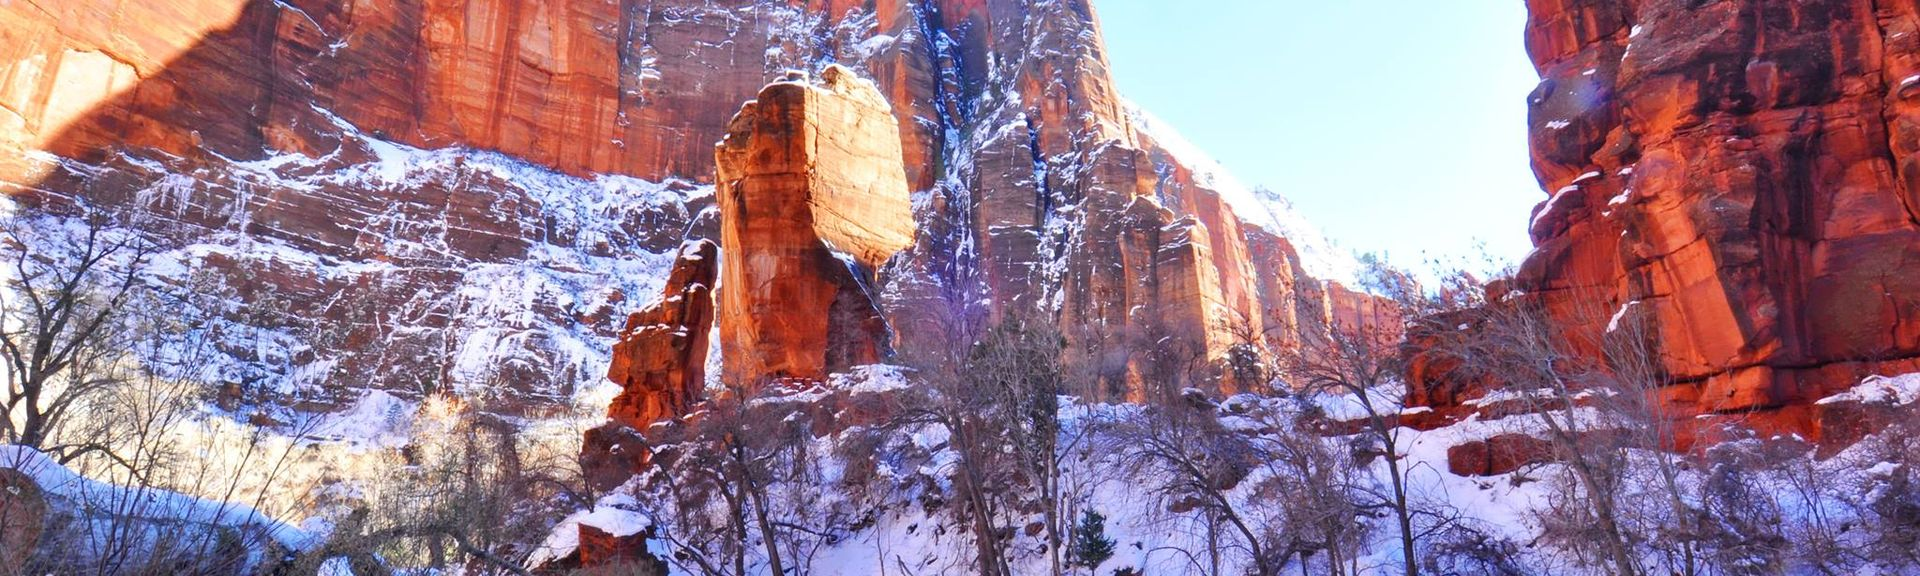 Zion National Park East Entrance, Orderville, Utah, United States